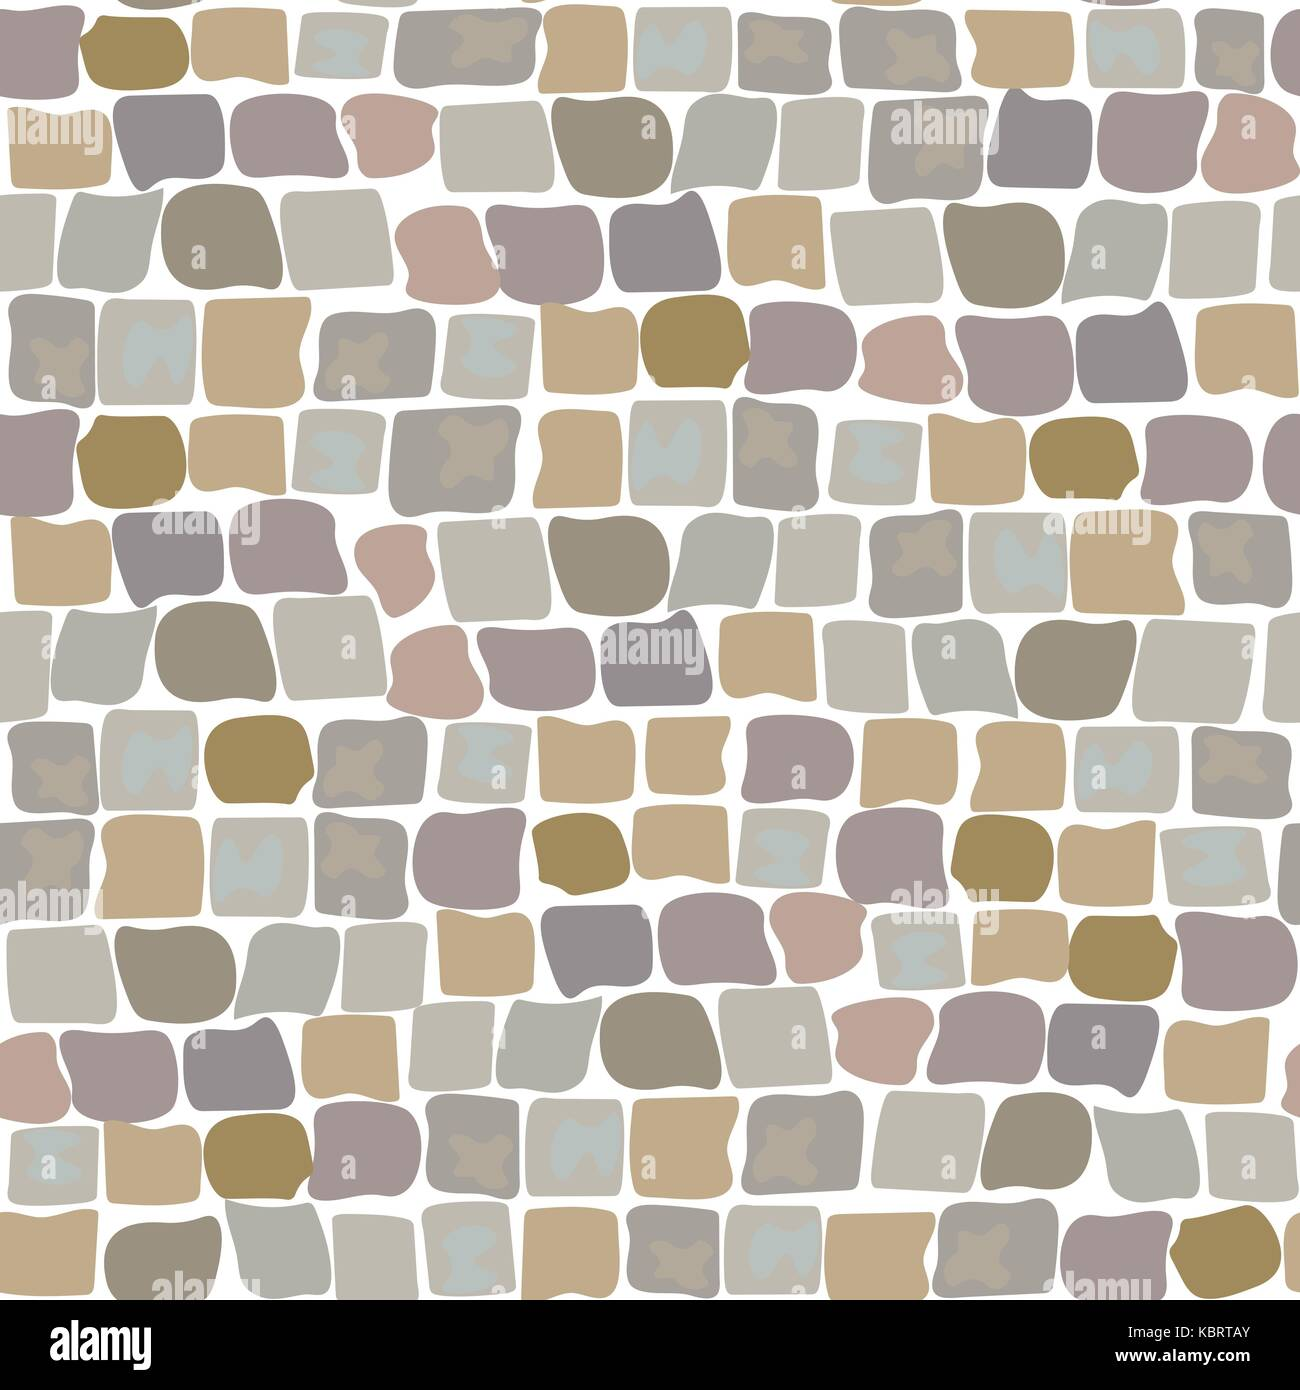 Paving Stones Road Texture seamless pattern. wall of stone, cobbled street - Stock Vector